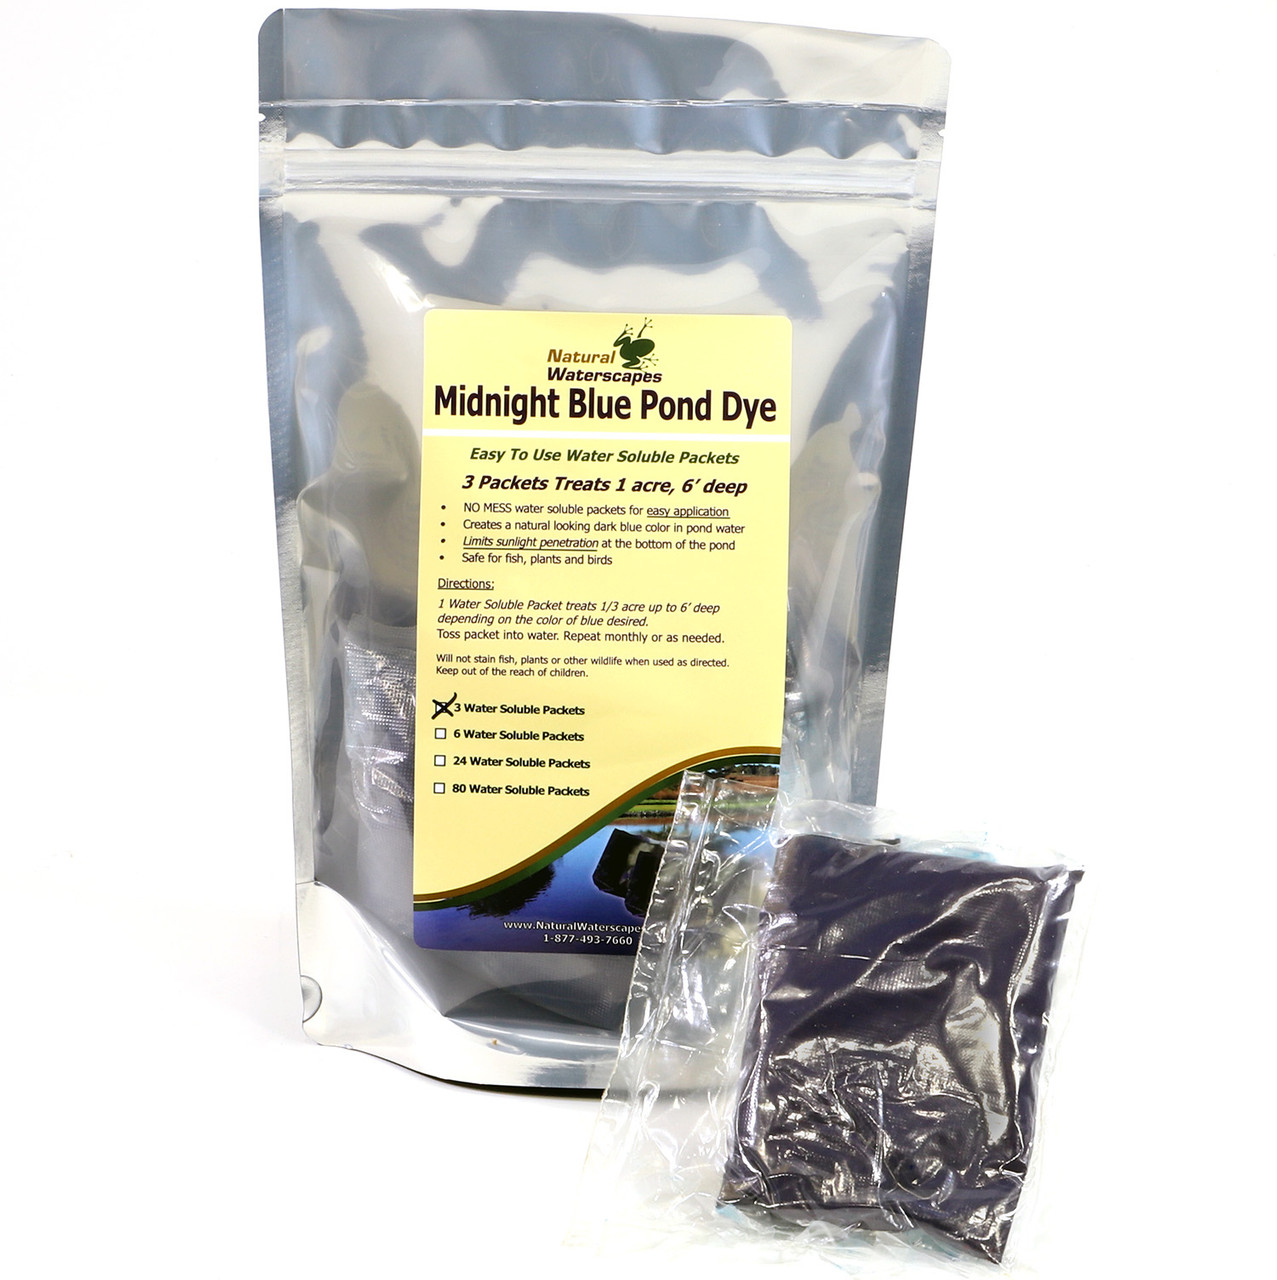 Midnight Blue Pond Dye Packets- 3 water soluble packets